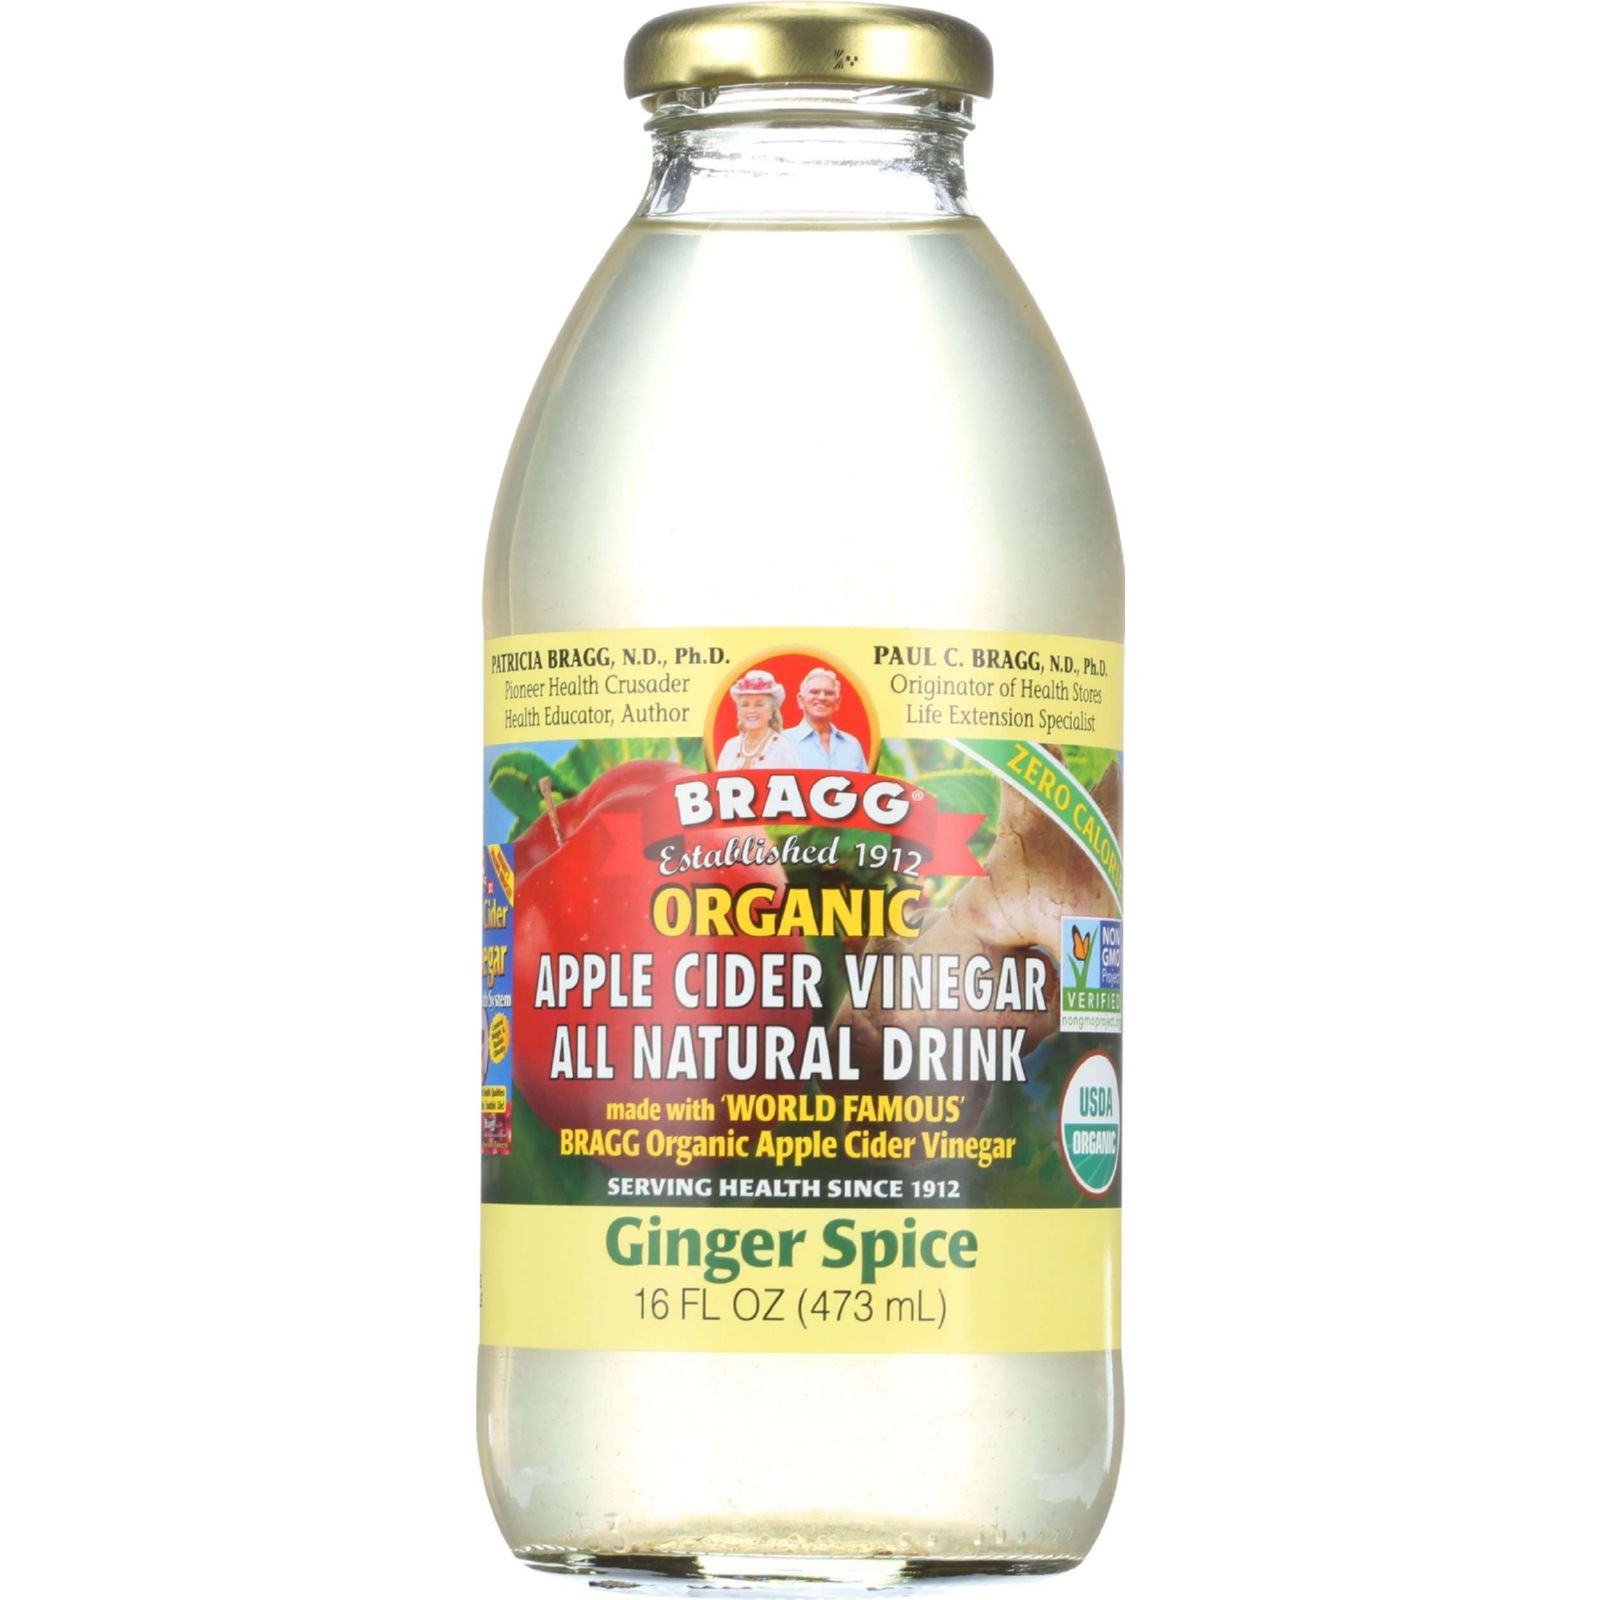 Bragg Apple Cider Vinegar Drink Organic Ginger Spice 16 oz case of 12 by